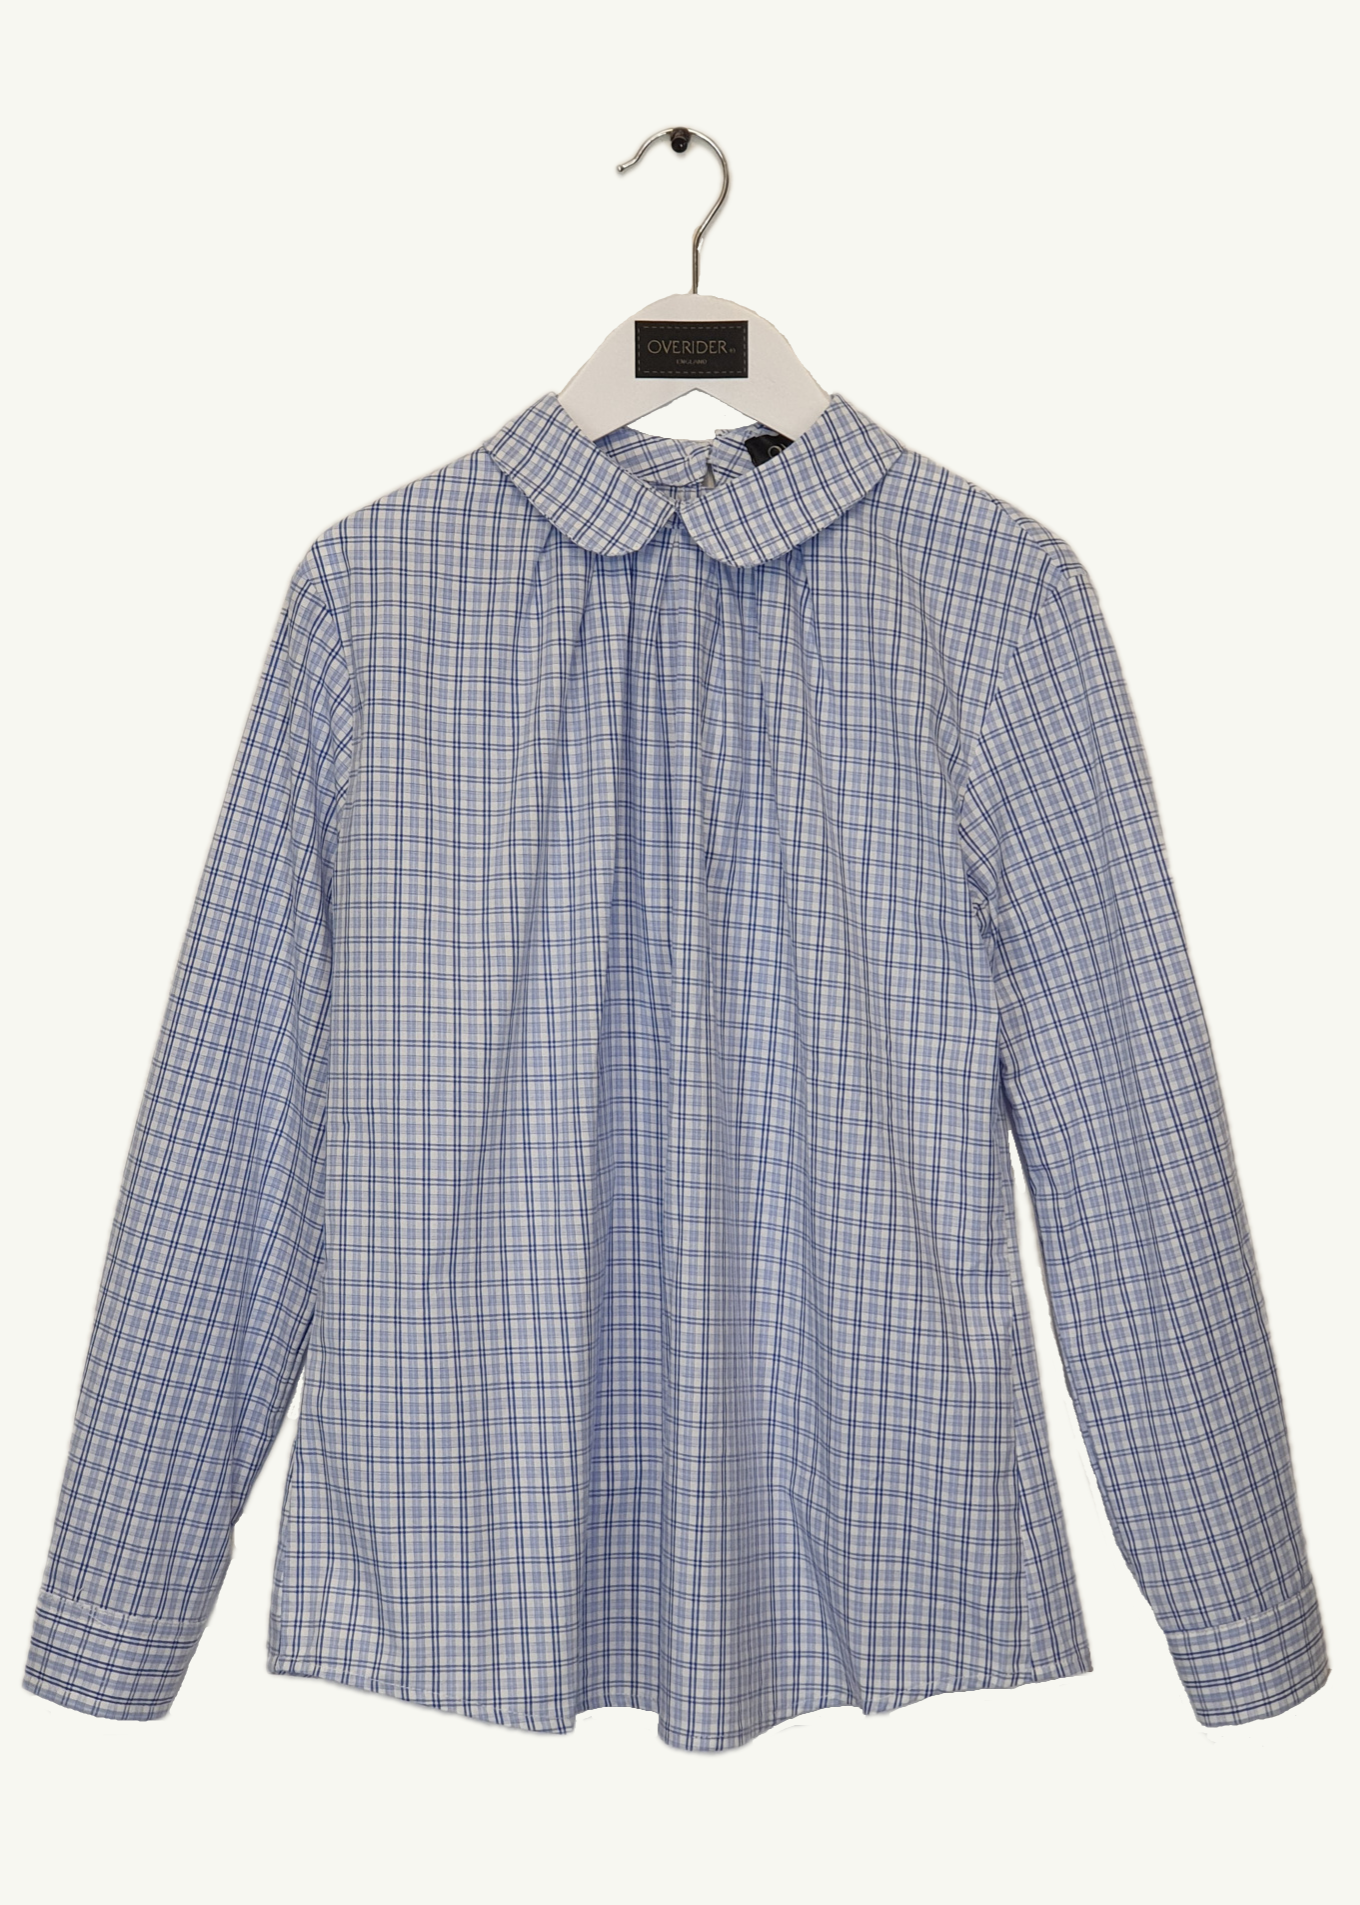 AVELINE - Girls Plaid  Button Back Blouse